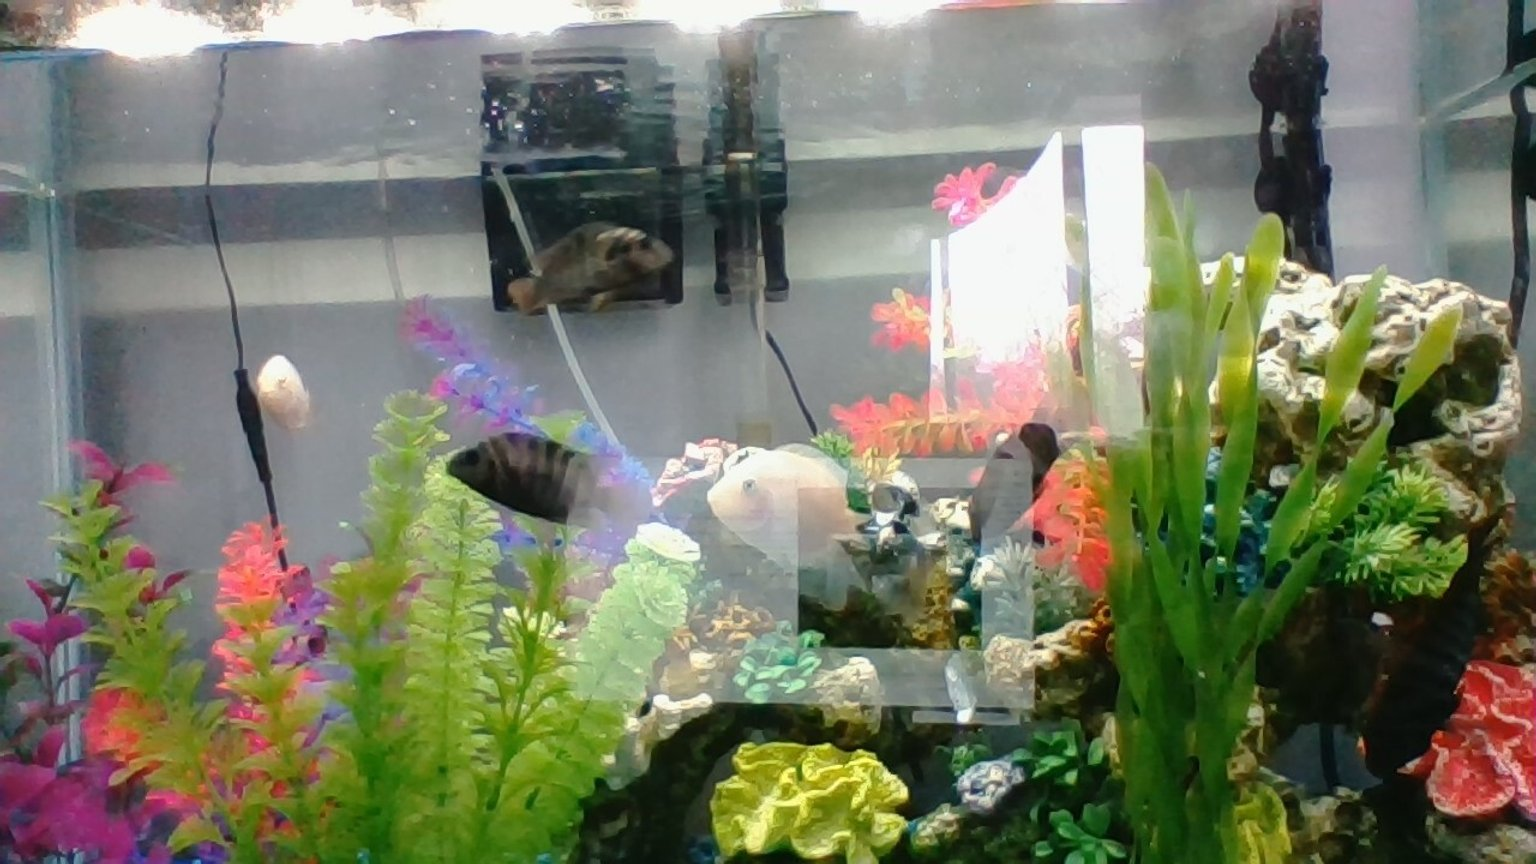 30 gallons freshwater fish tank (mostly fish and non-living decorations) - my tank please let me know if im doing anything wrong or need to improve anything